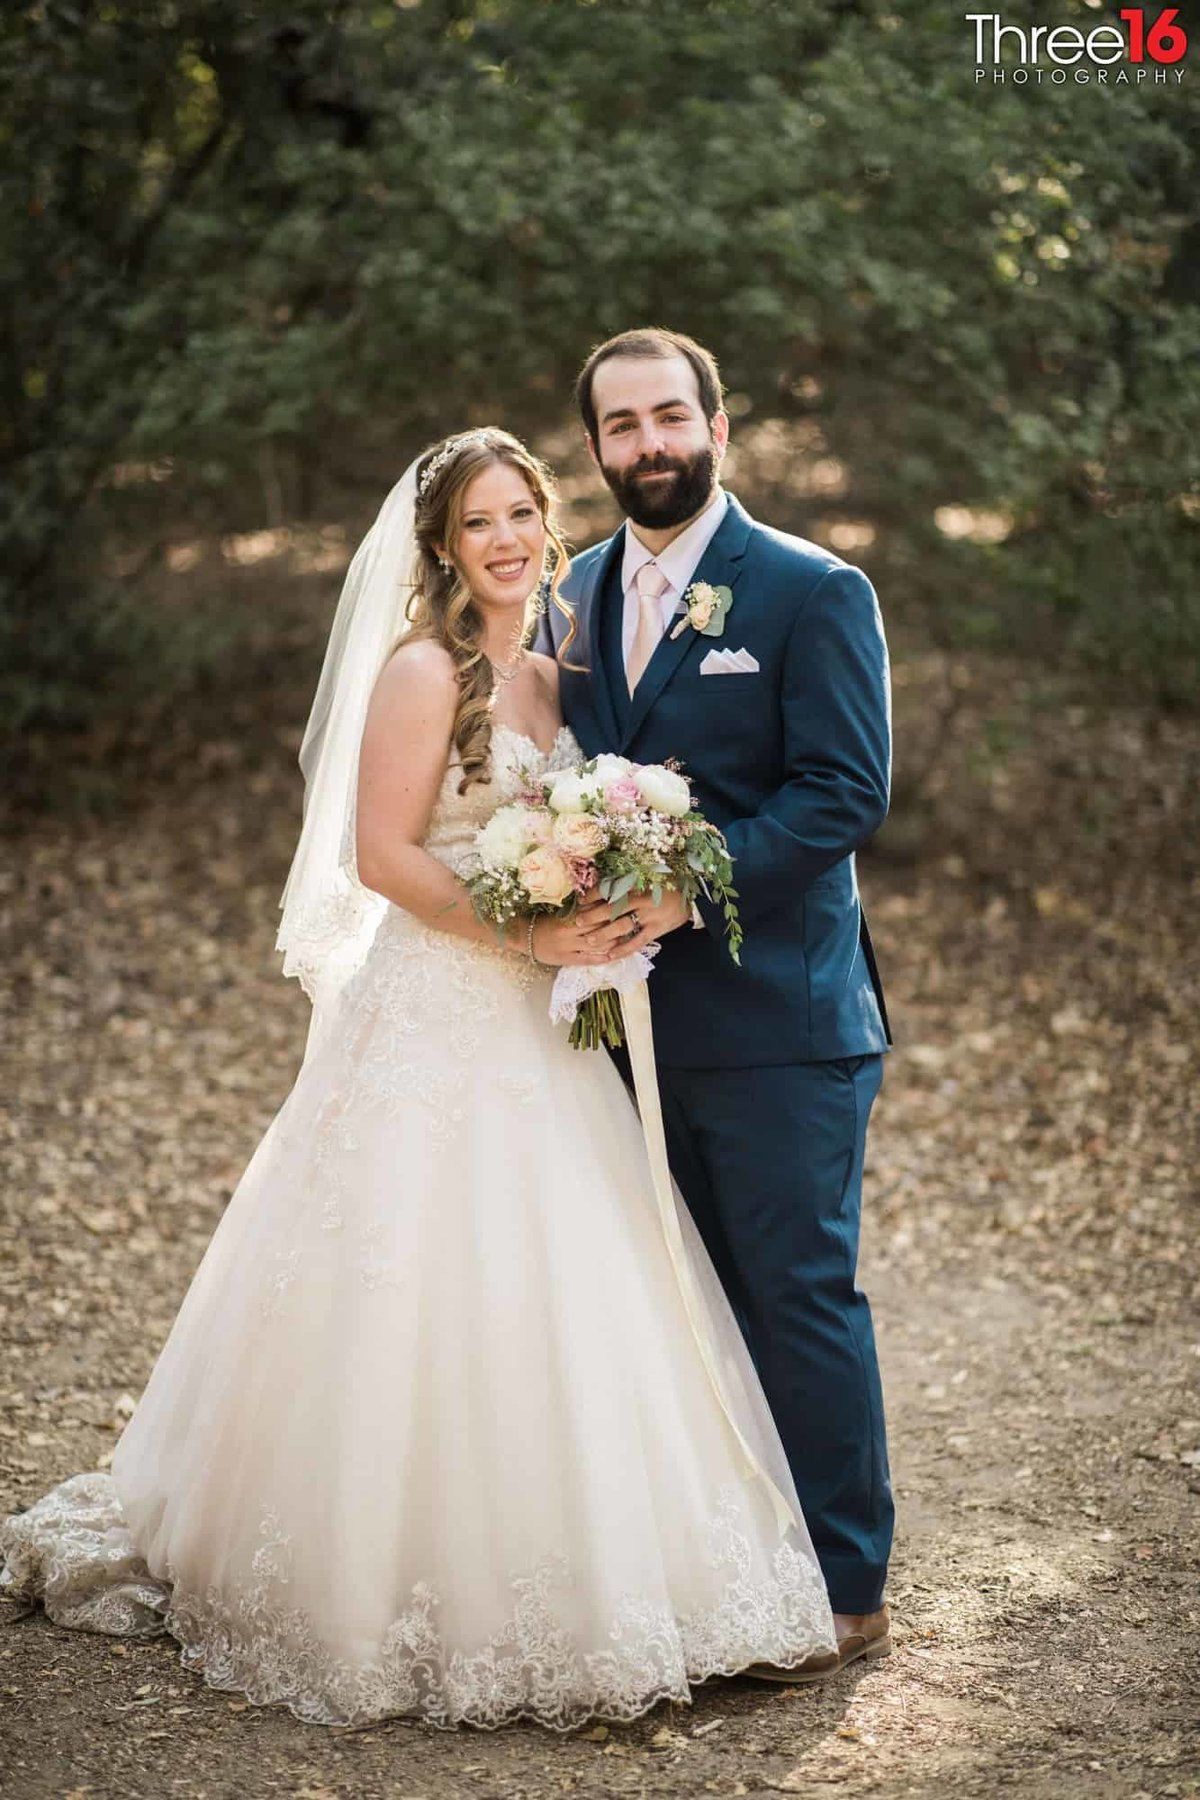 Oak Canyon Nature Center Wedding Anaheim California wedding photographer Ceremony Bride and Groom Photos_1